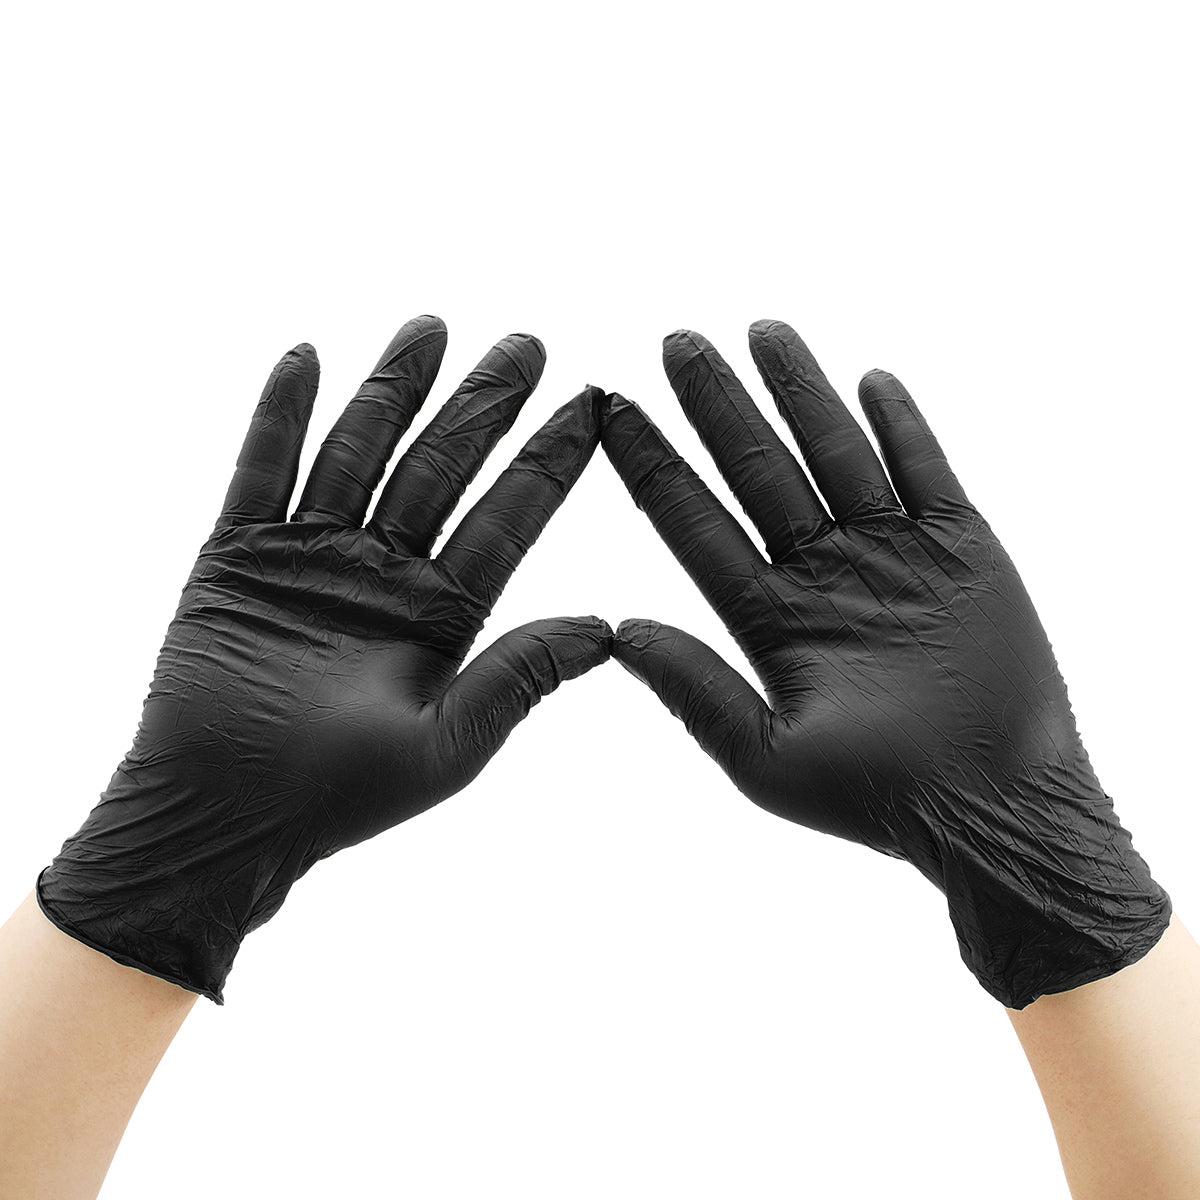 100PCS Disposable Nitrile Protective Gloves Powder-free Isolate Oil Bacteria Dust Droplets Glove Personal Health